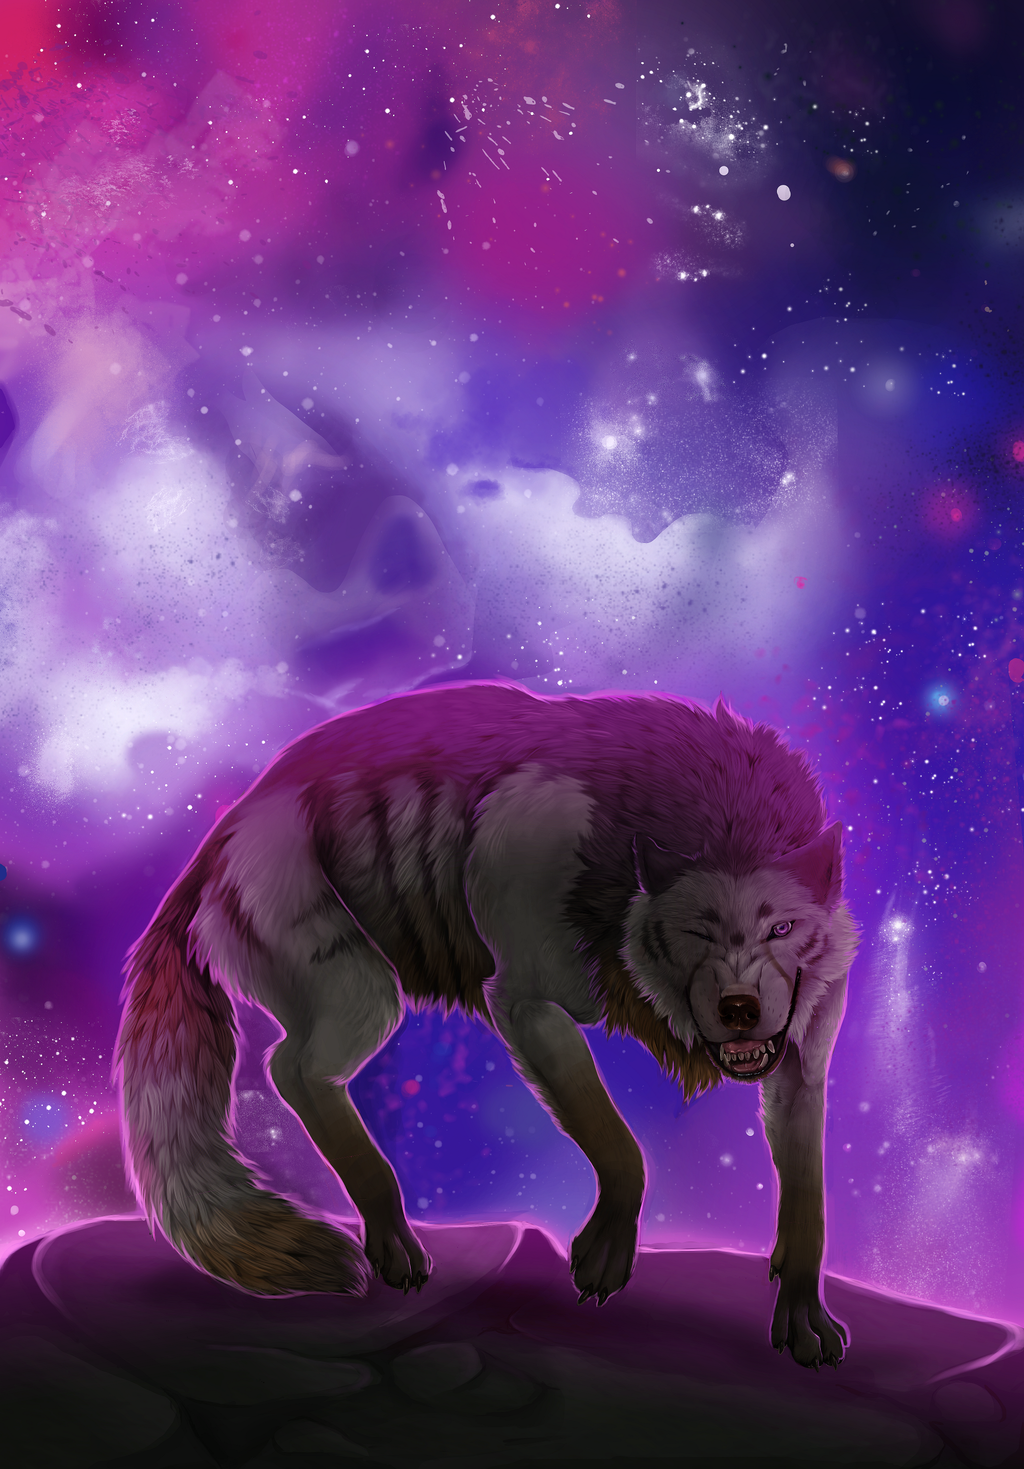 maow Are_you_dreaming_____speedpaint_by_neko_systeme-d91o94e